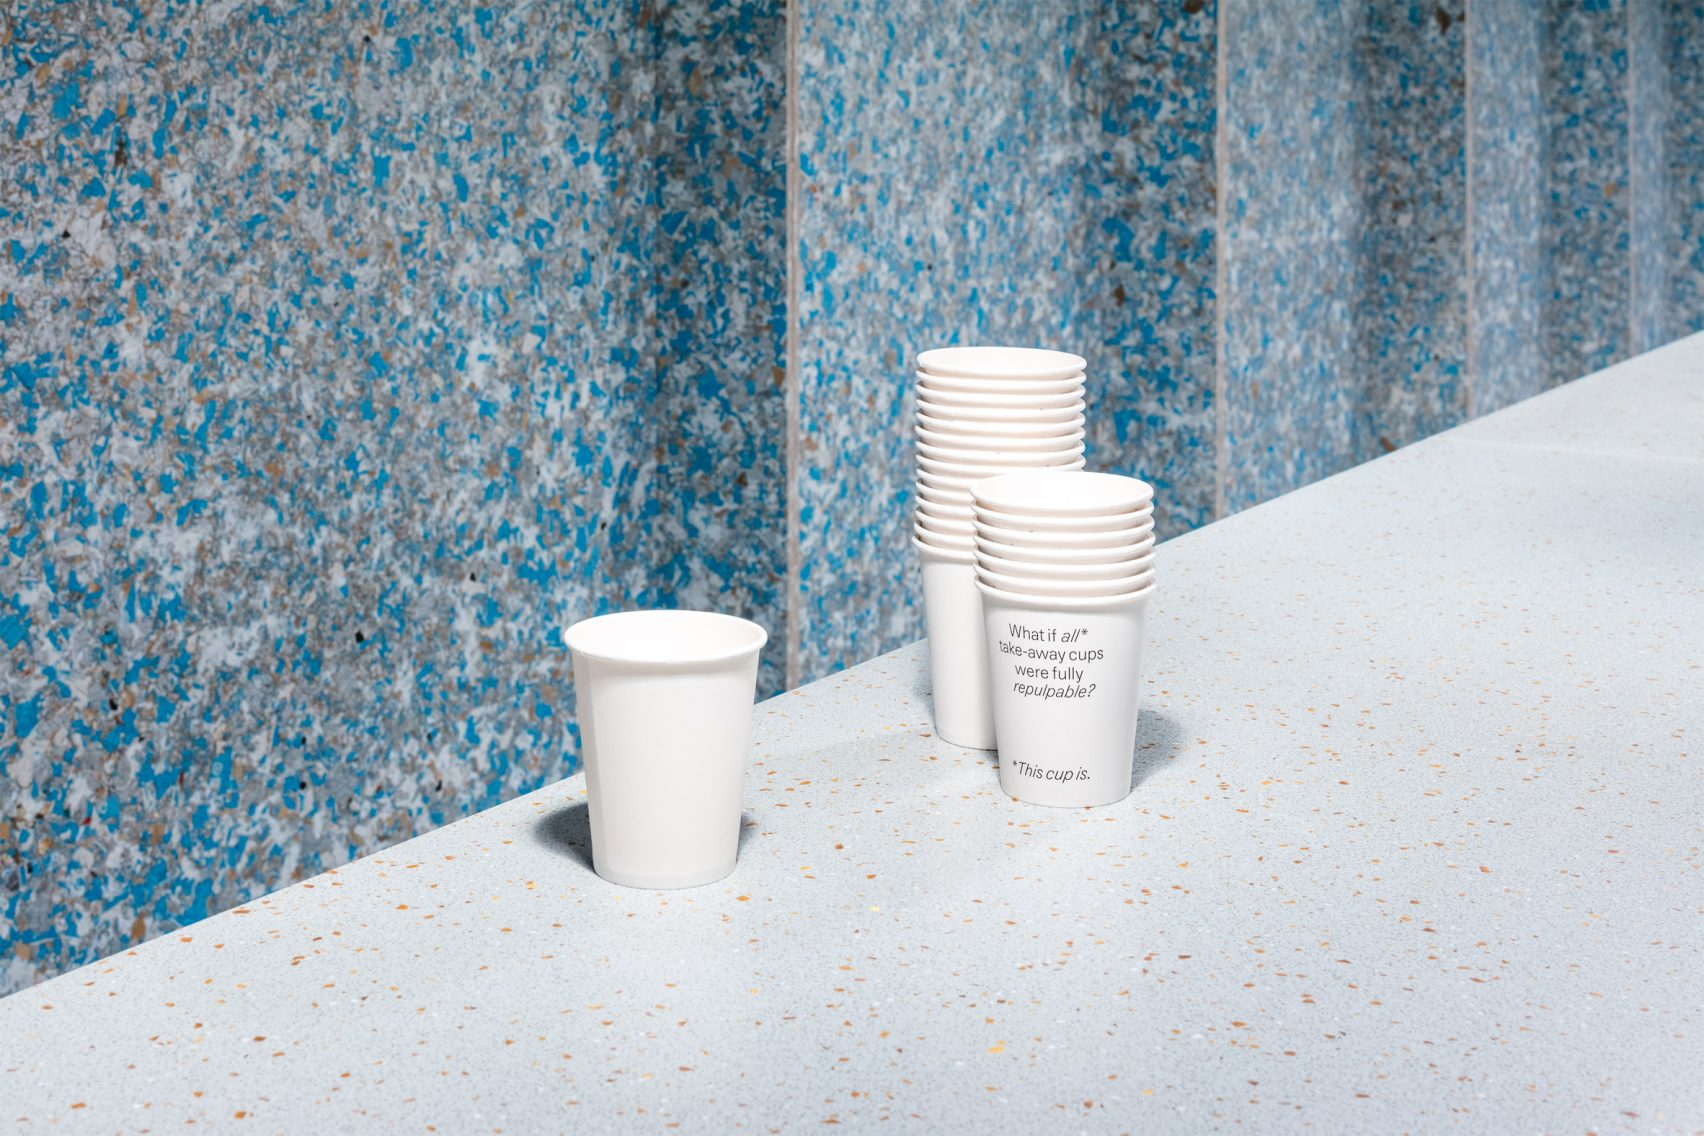 zero-waste-bistro-finnish-design-new-york-city-4